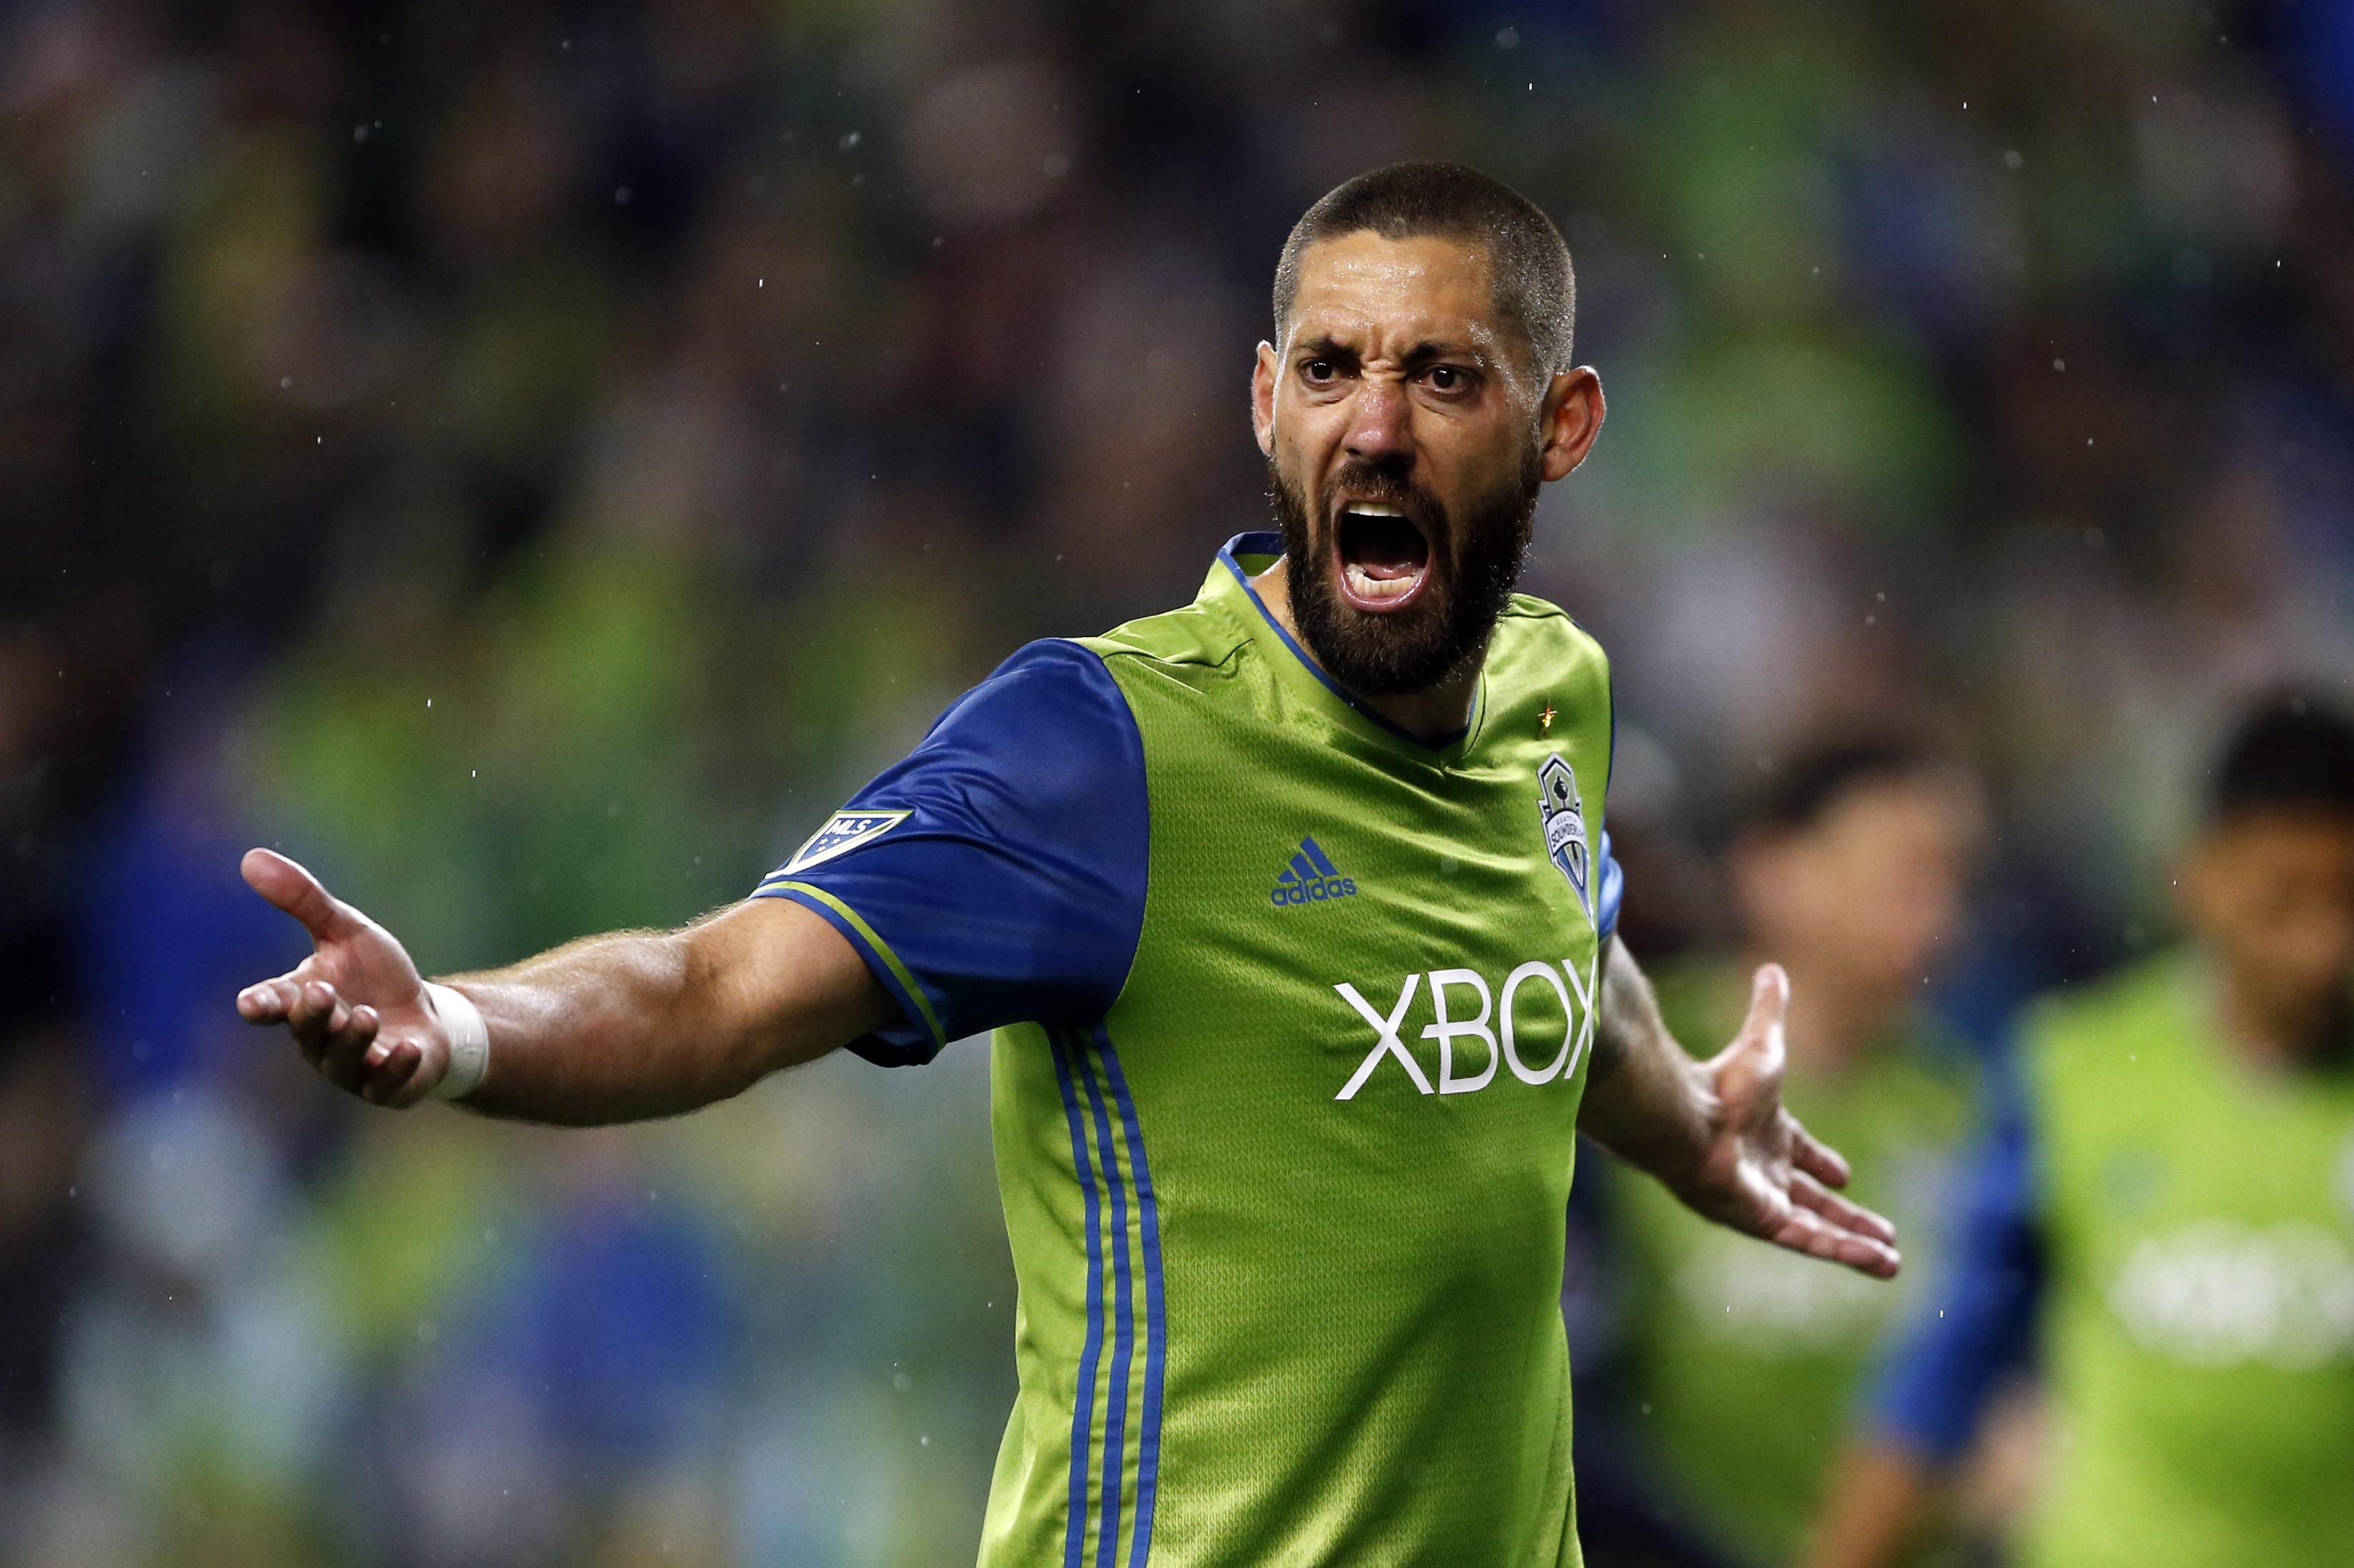 10036871-mls-new-england-revolution-at-seattle-sounders-fc